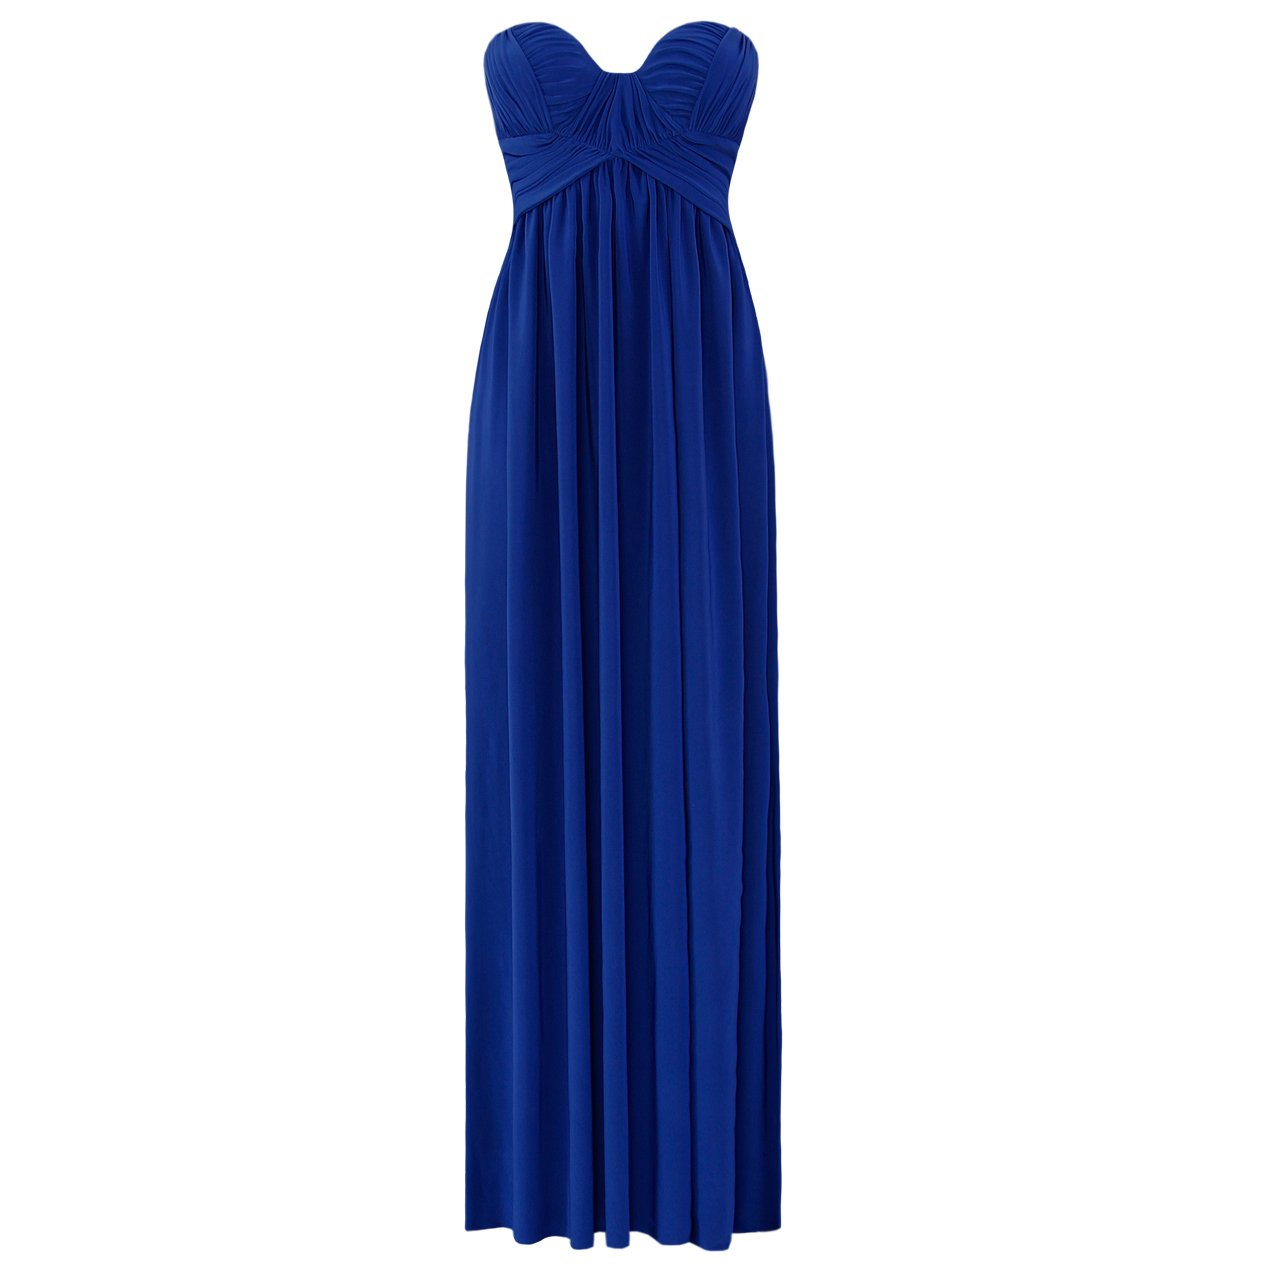 JESSICA ALBA BLUE LADIES STRAPLESS LONG SUMMER EVENING PARTY PROM GOWN MAXI DRESS UK 10-12, US 6-8